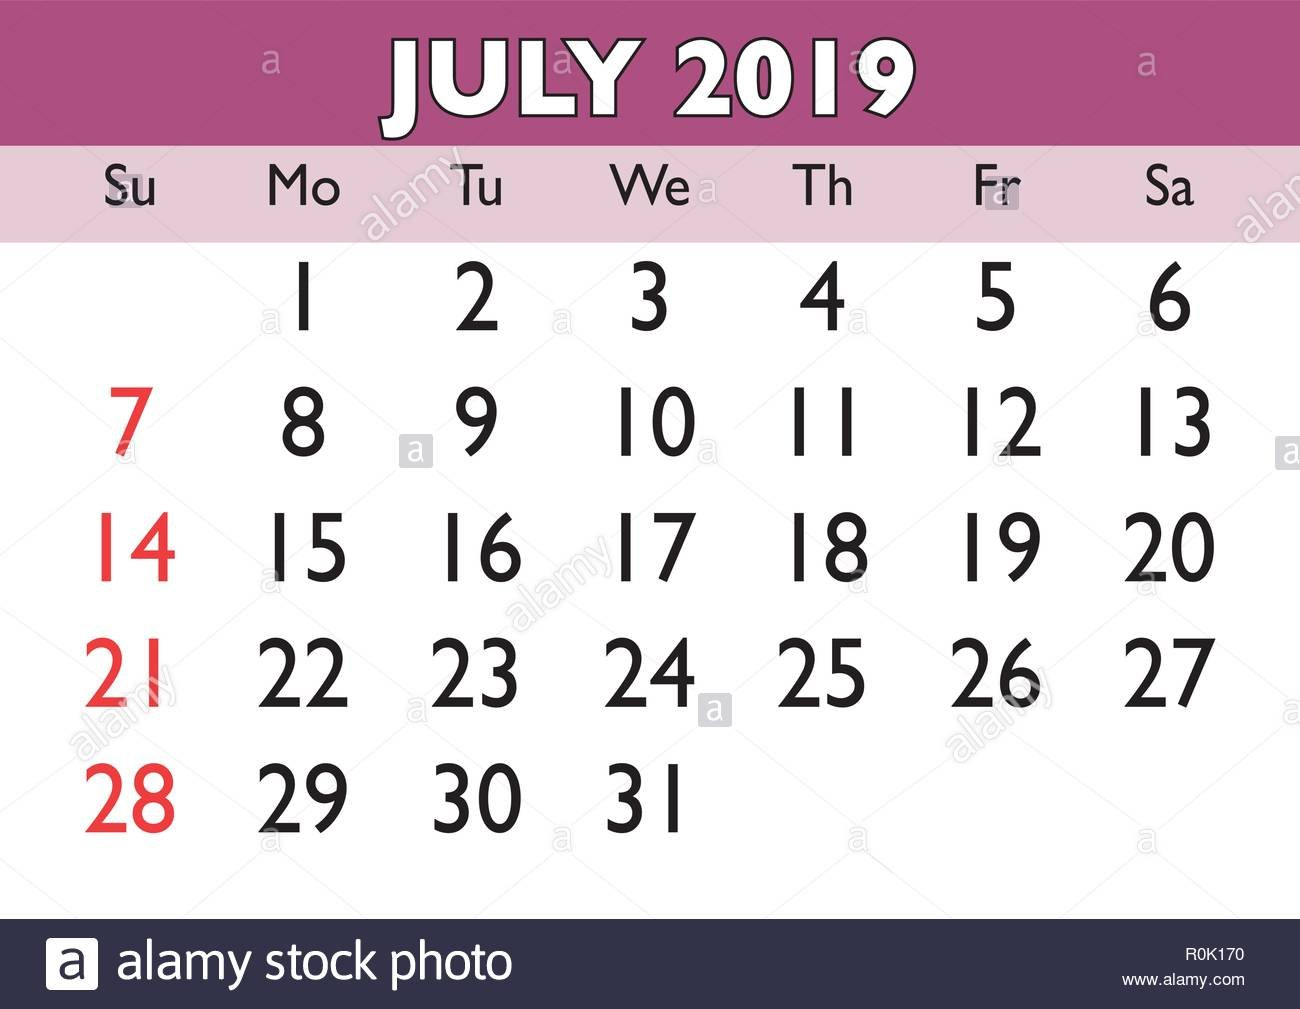 July 2019 Calendar Stock Photos & July 2019 Calendar Stock Images July 4 2019 Calendar